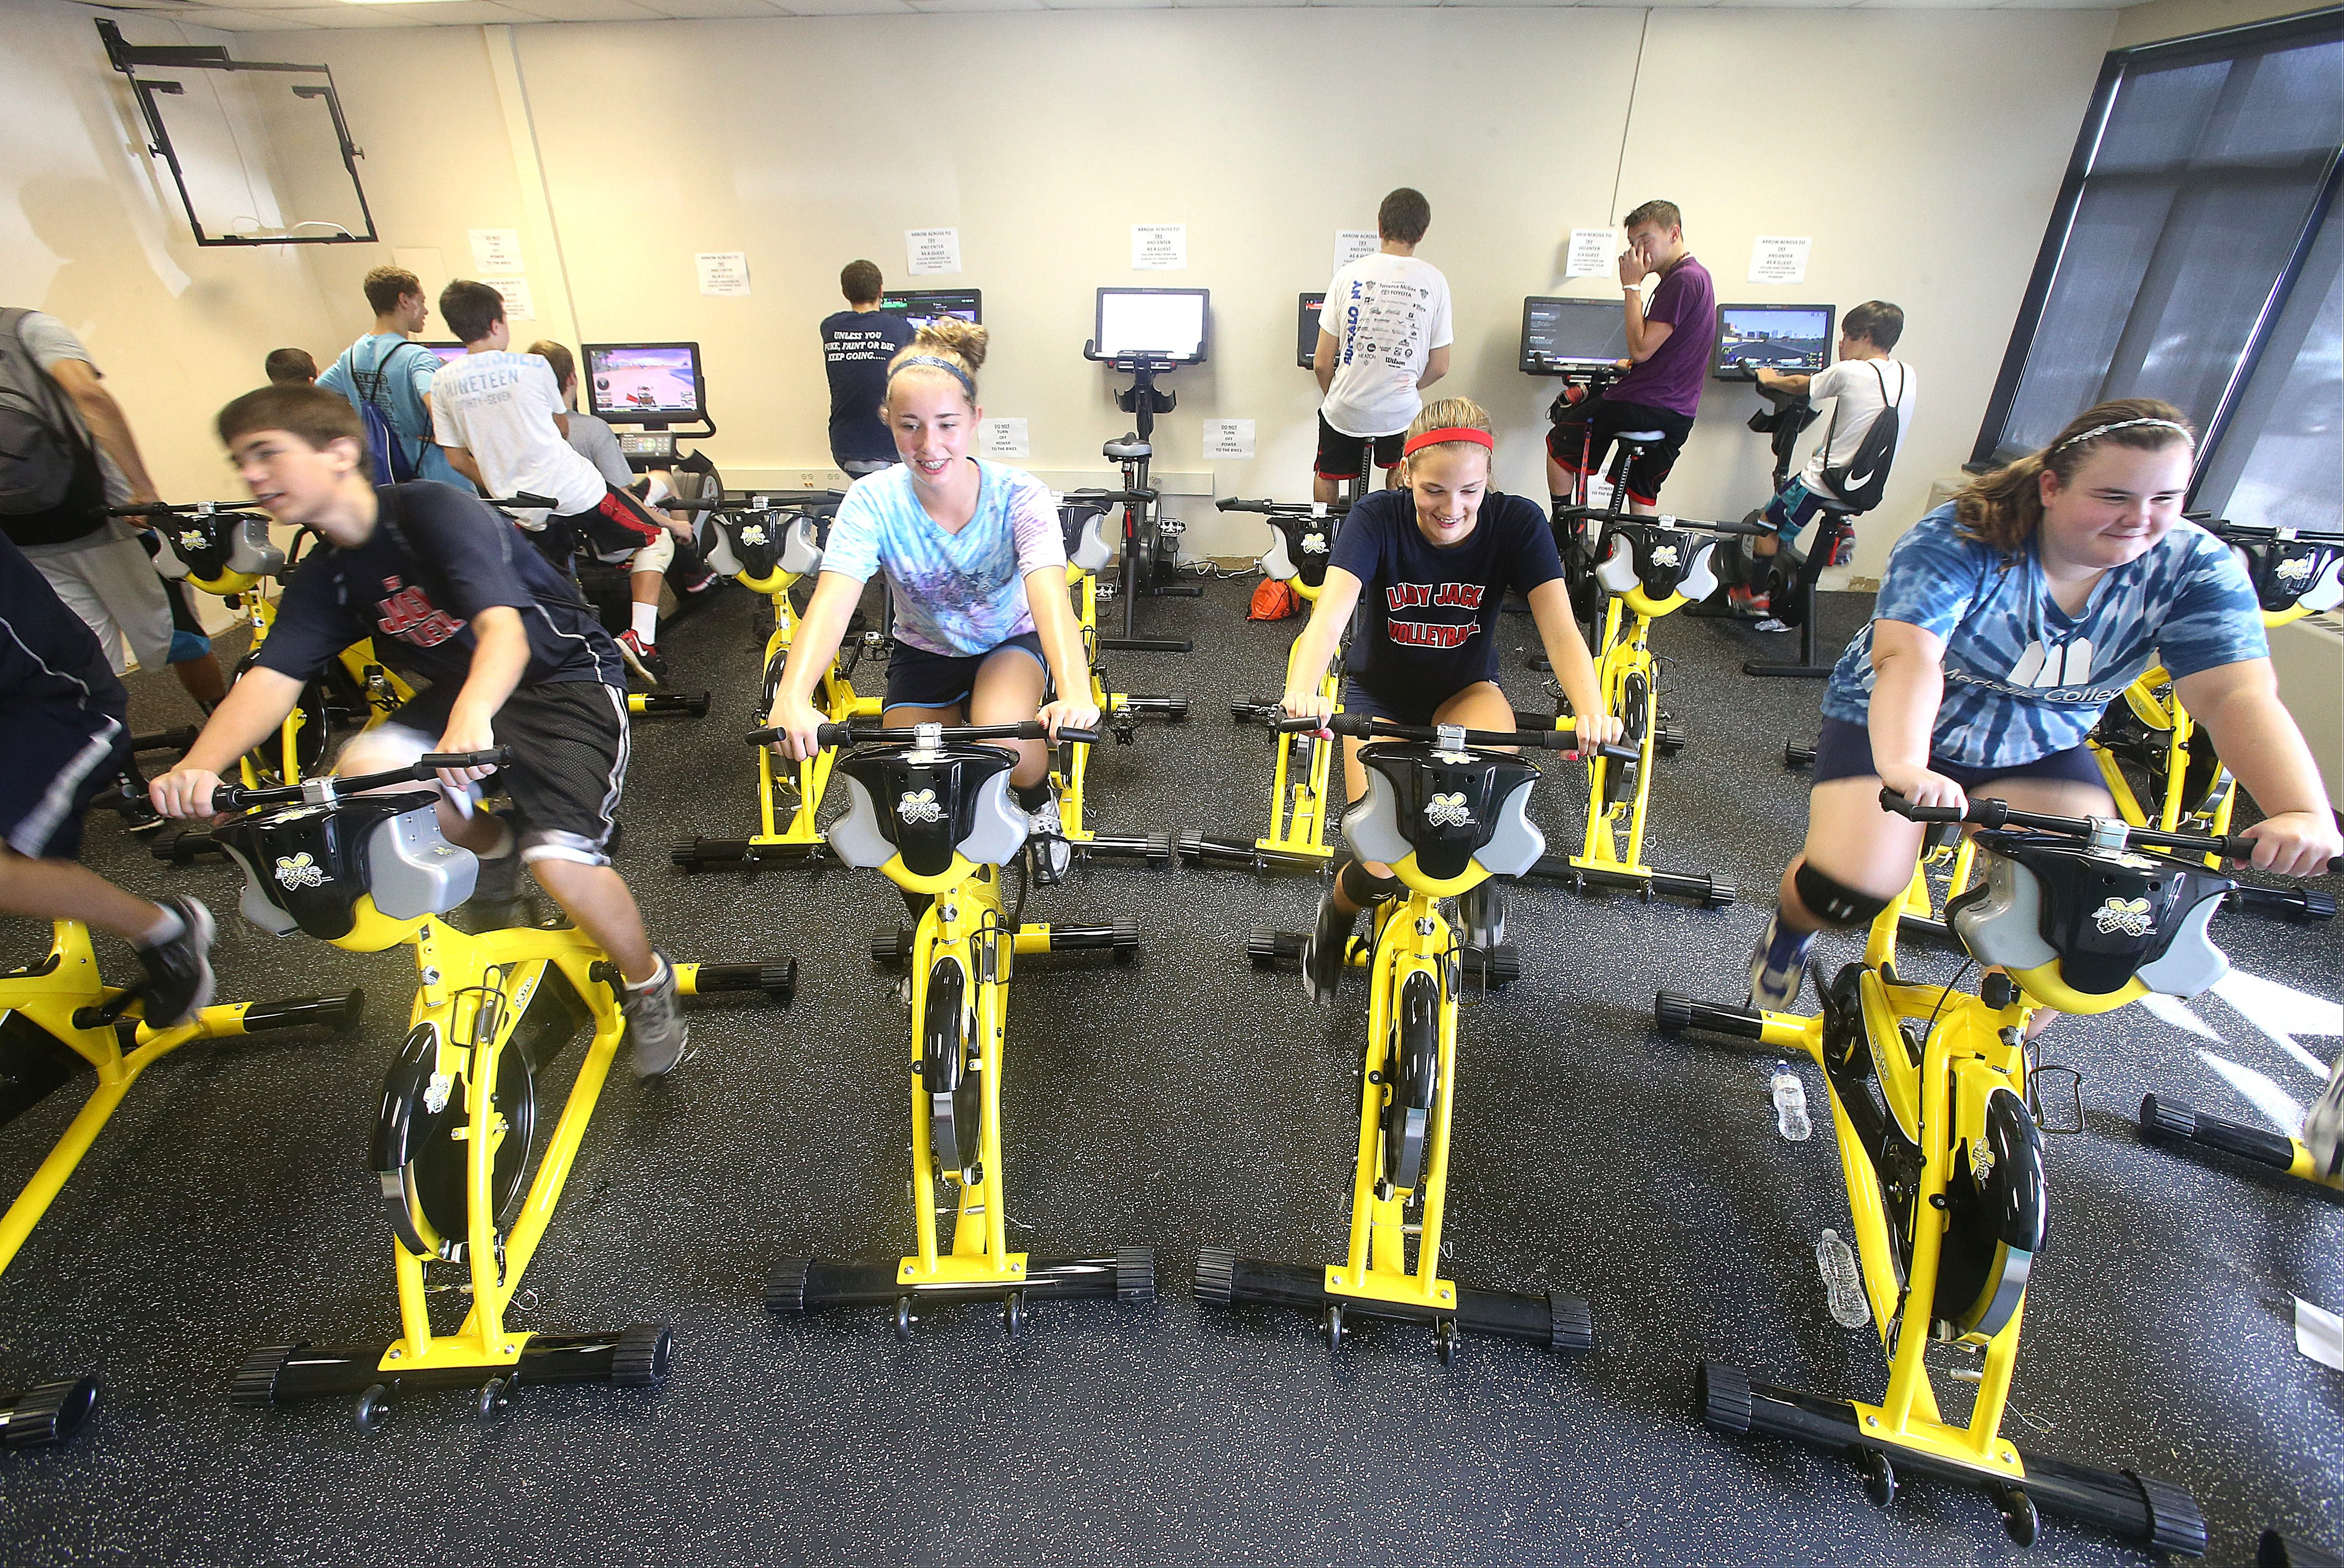 North Tonawanda High School volleyball teammates hone their competitive interests while riding the new interactive bikes designed to spur a lifetime commitment to fitness in the renovated and expanded gymnasium.